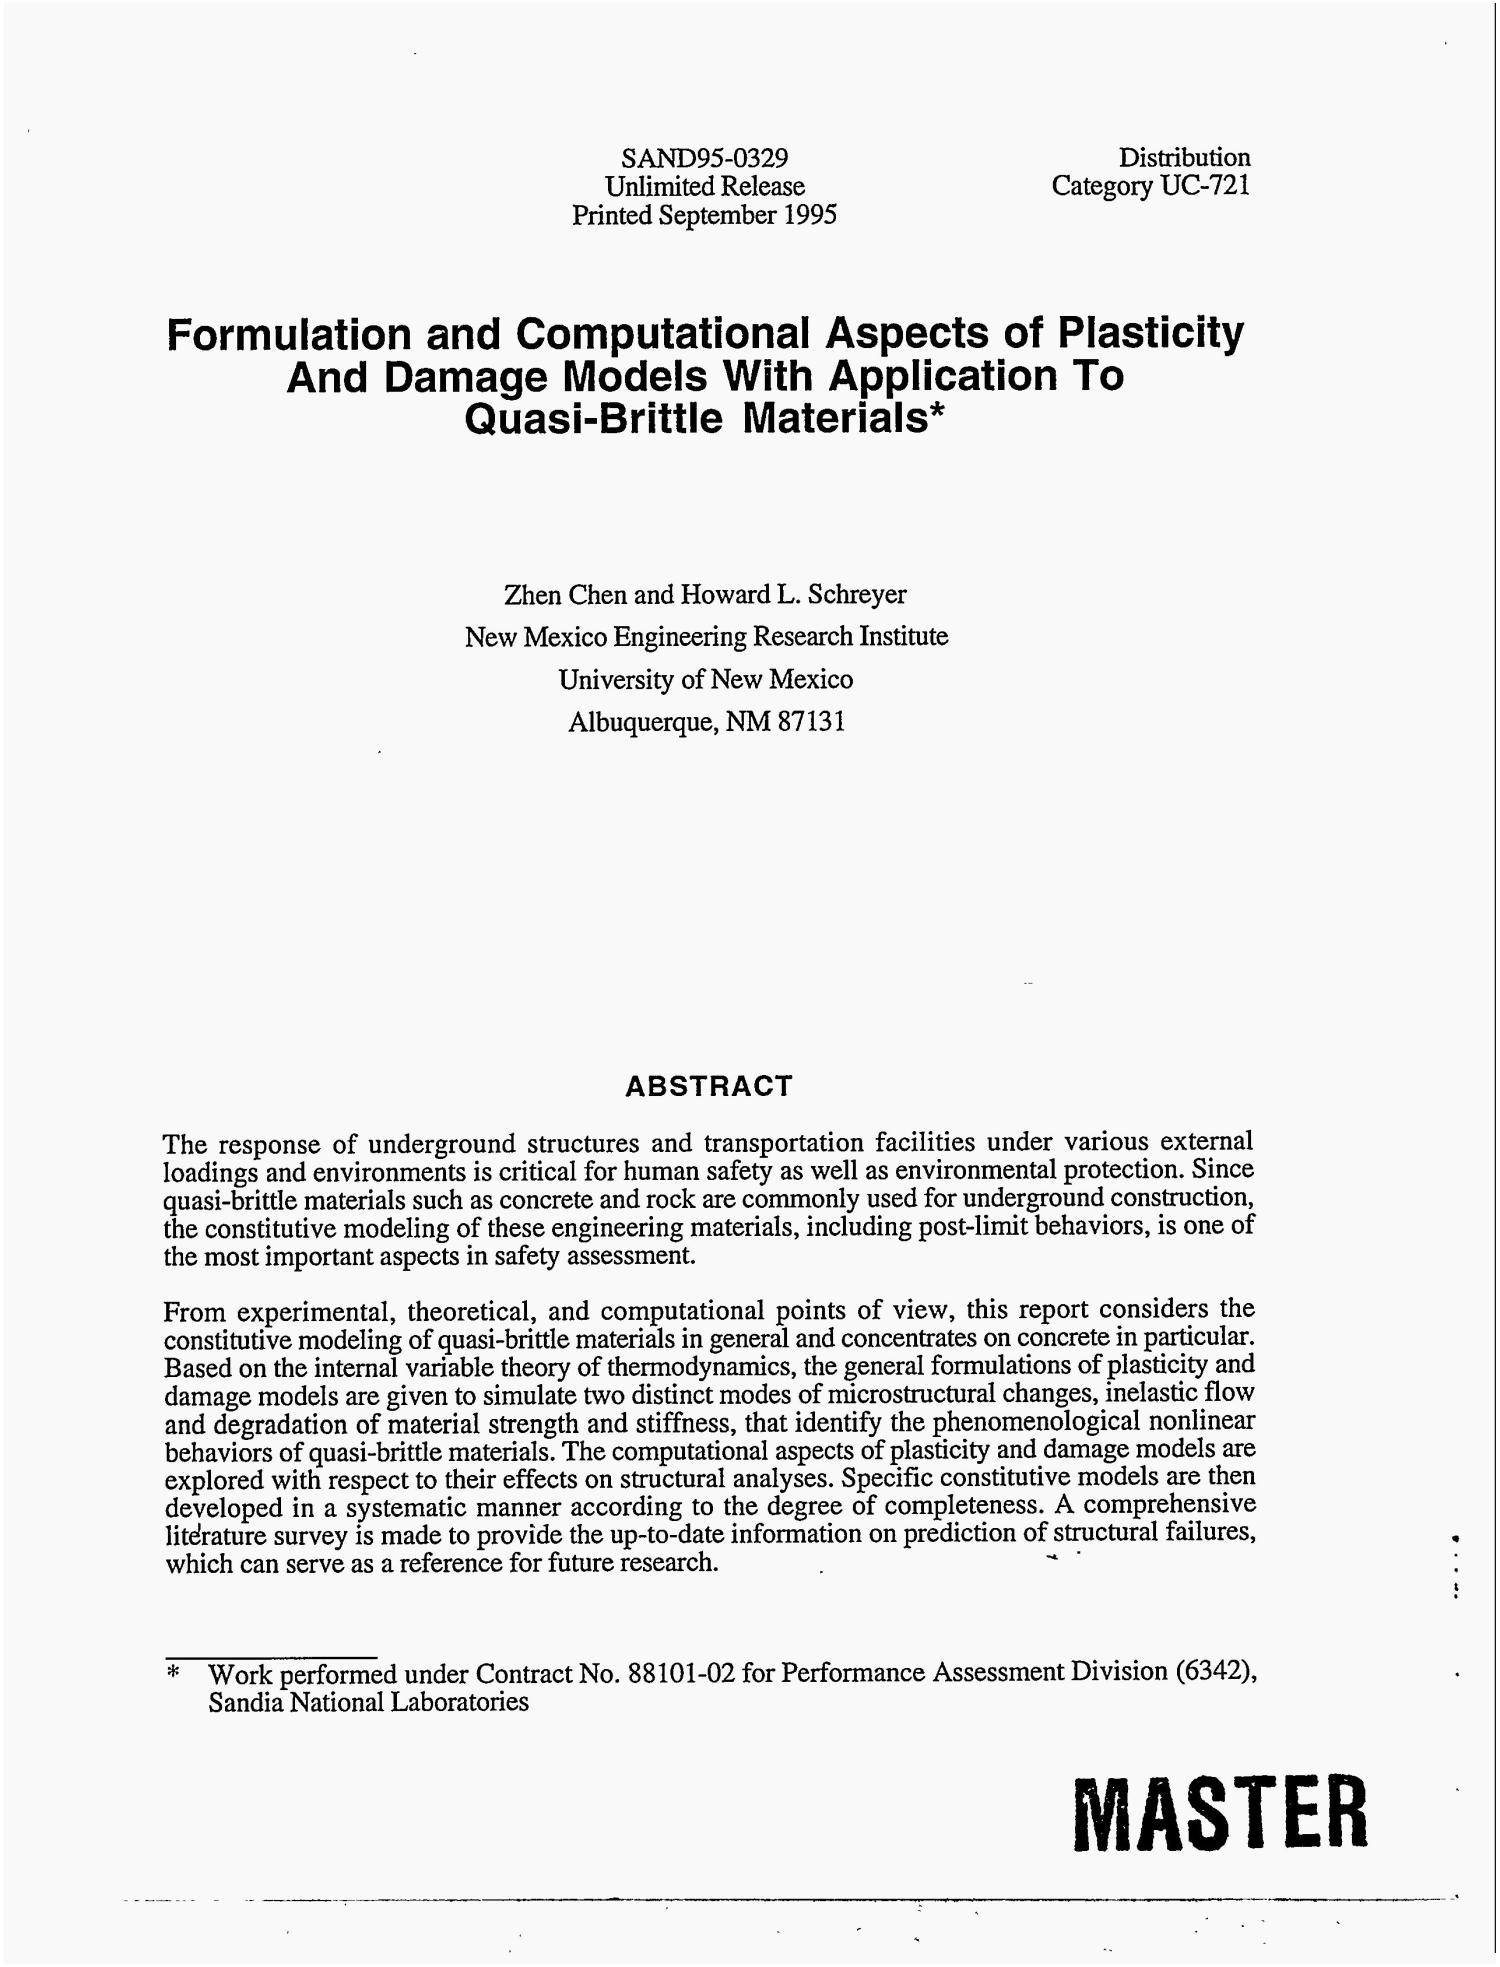 Formulation and computational aspects of plasticity and damage models with application to quasi-brittle materials                                                                                                      [Sequence #]: 3 of 120